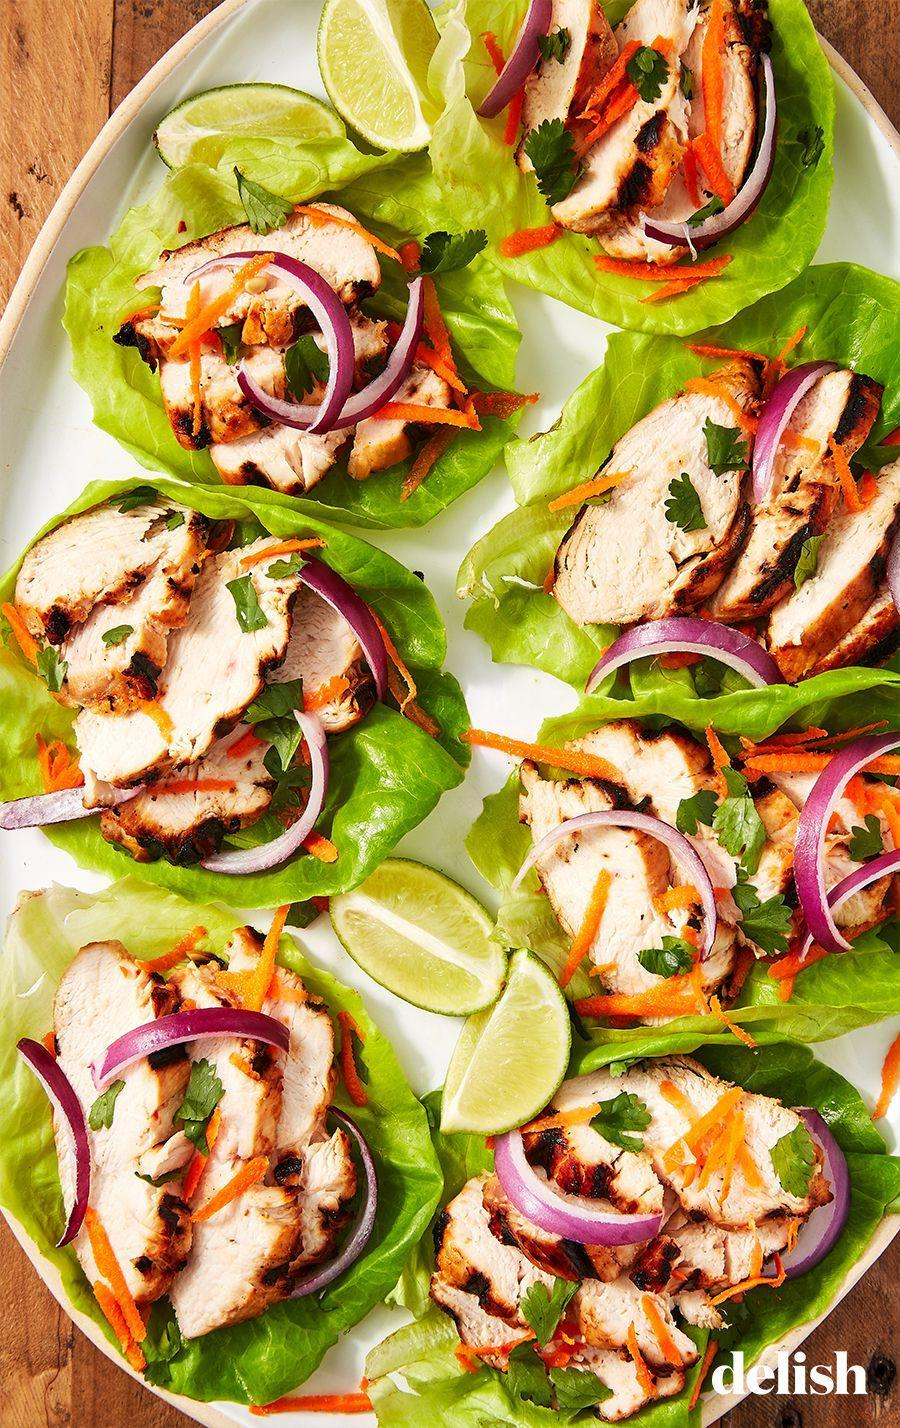 """<p>You could go out to a fancy restaurant...or you could make these at home.</p><p>Get the recipe from <a href=""""https://www.delish.com/cooking/recipe-ideas/recipes/a57645/thai-chicken-lettuce-cups-recipe/"""" rel=""""nofollow noopener"""" target=""""_blank"""" data-ylk=""""slk:Delish"""" class=""""link rapid-noclick-resp"""">Delish</a>.</p>"""